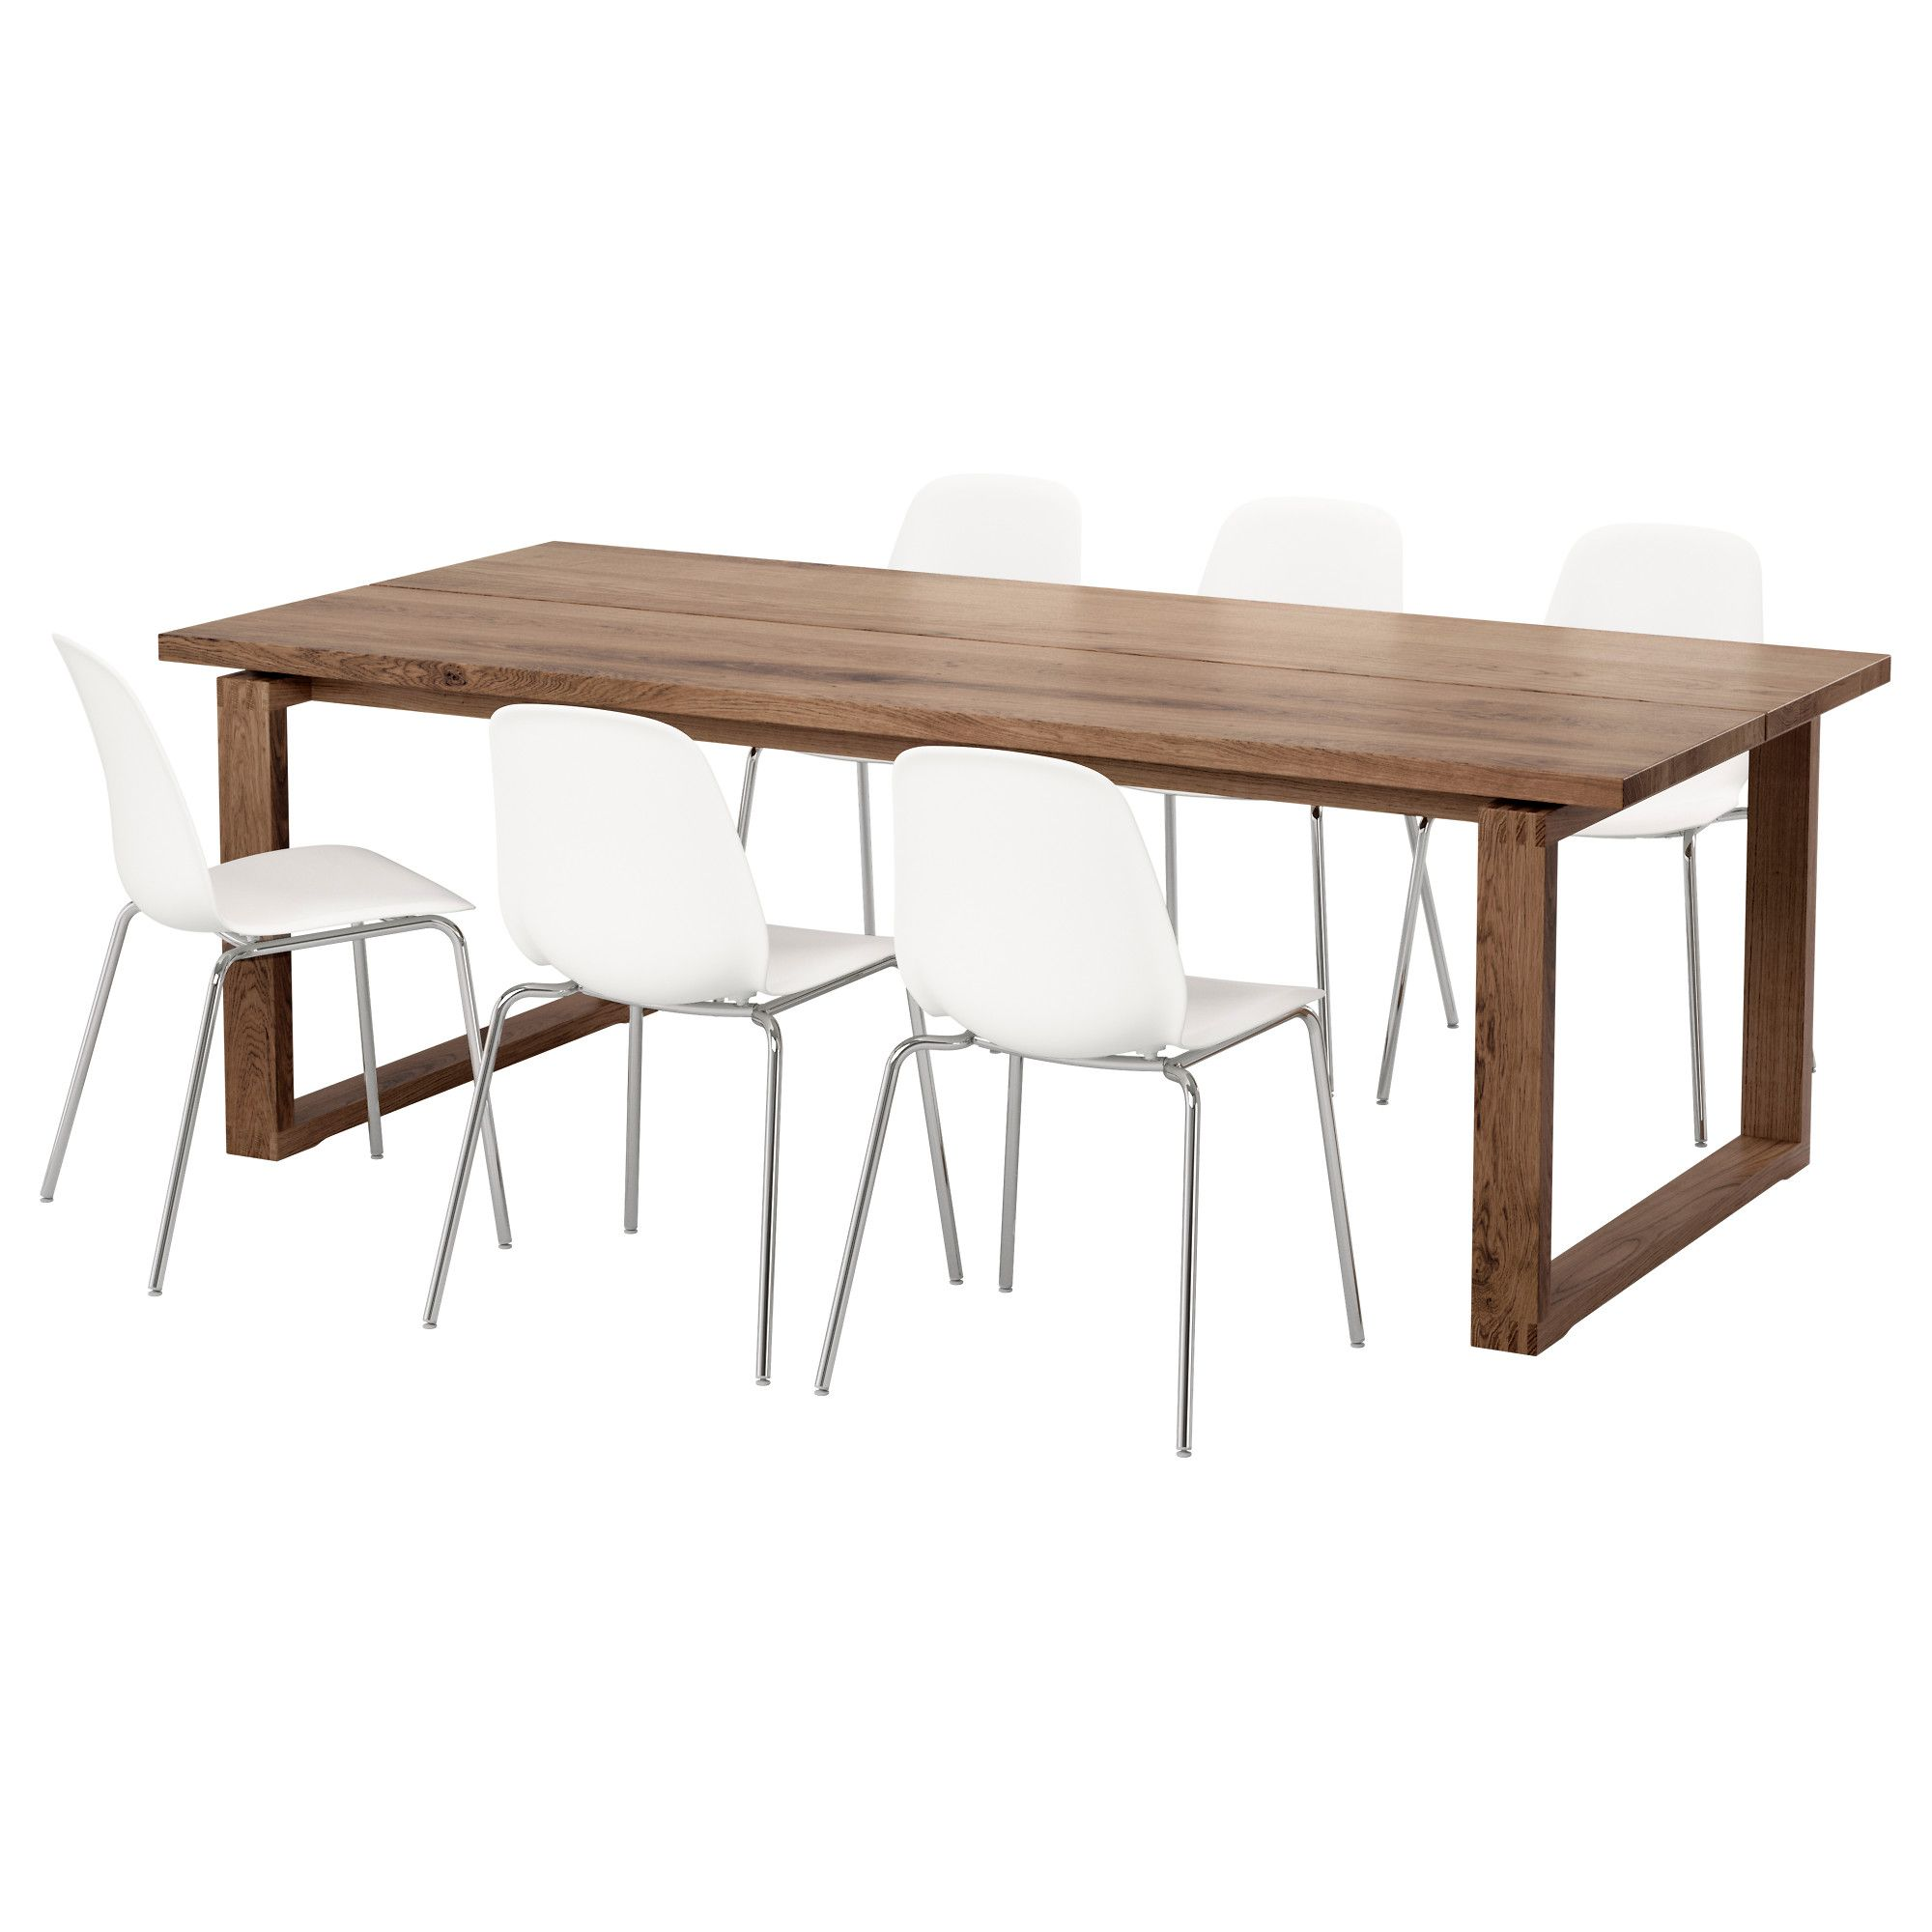 M rbyl nga leifarne table and 6 chairs ikea my for Table 6 chaises ikea